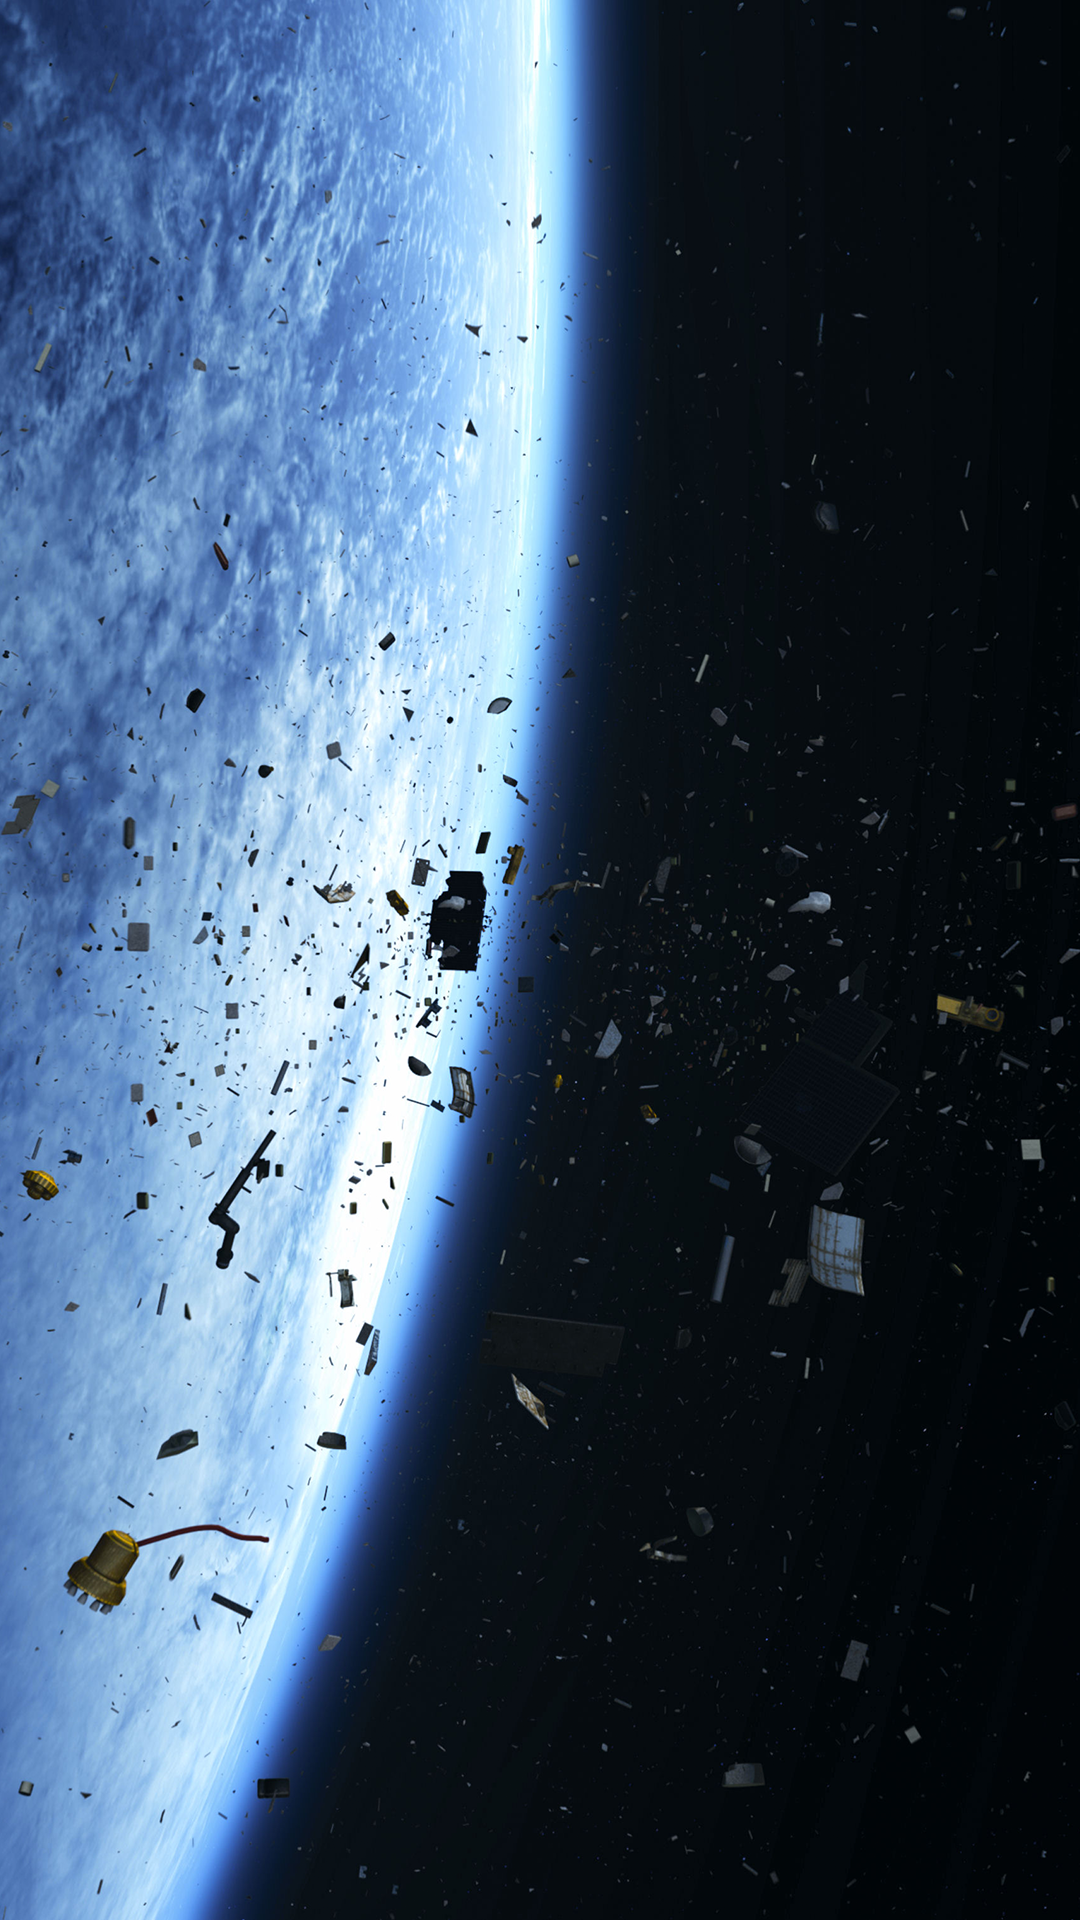 ultra hd space debris wallpaper for your mobile phone 0527